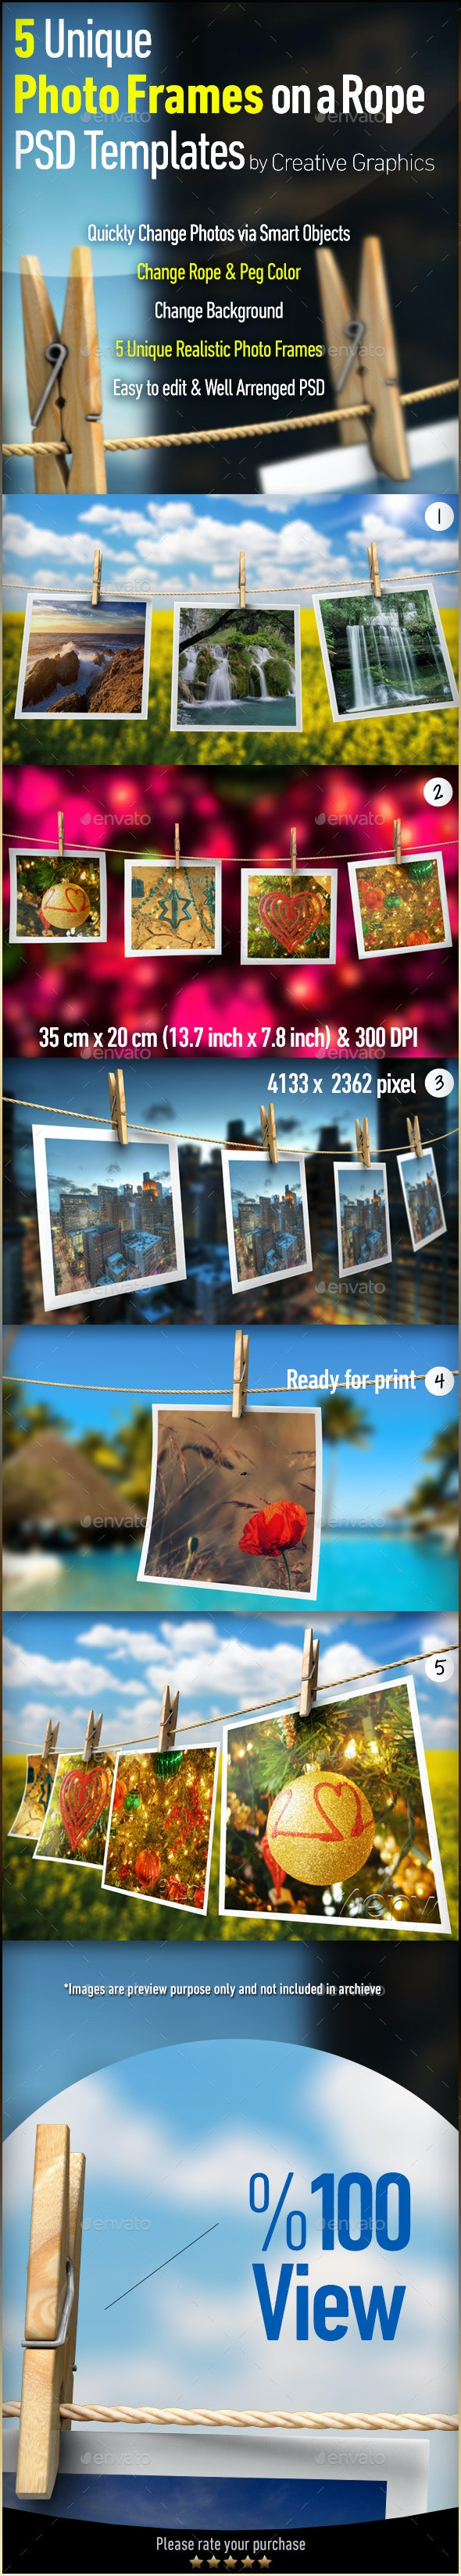 Photo-Image Frames on a Rope Photoshop Mock-ups - Miscellaneous Displays